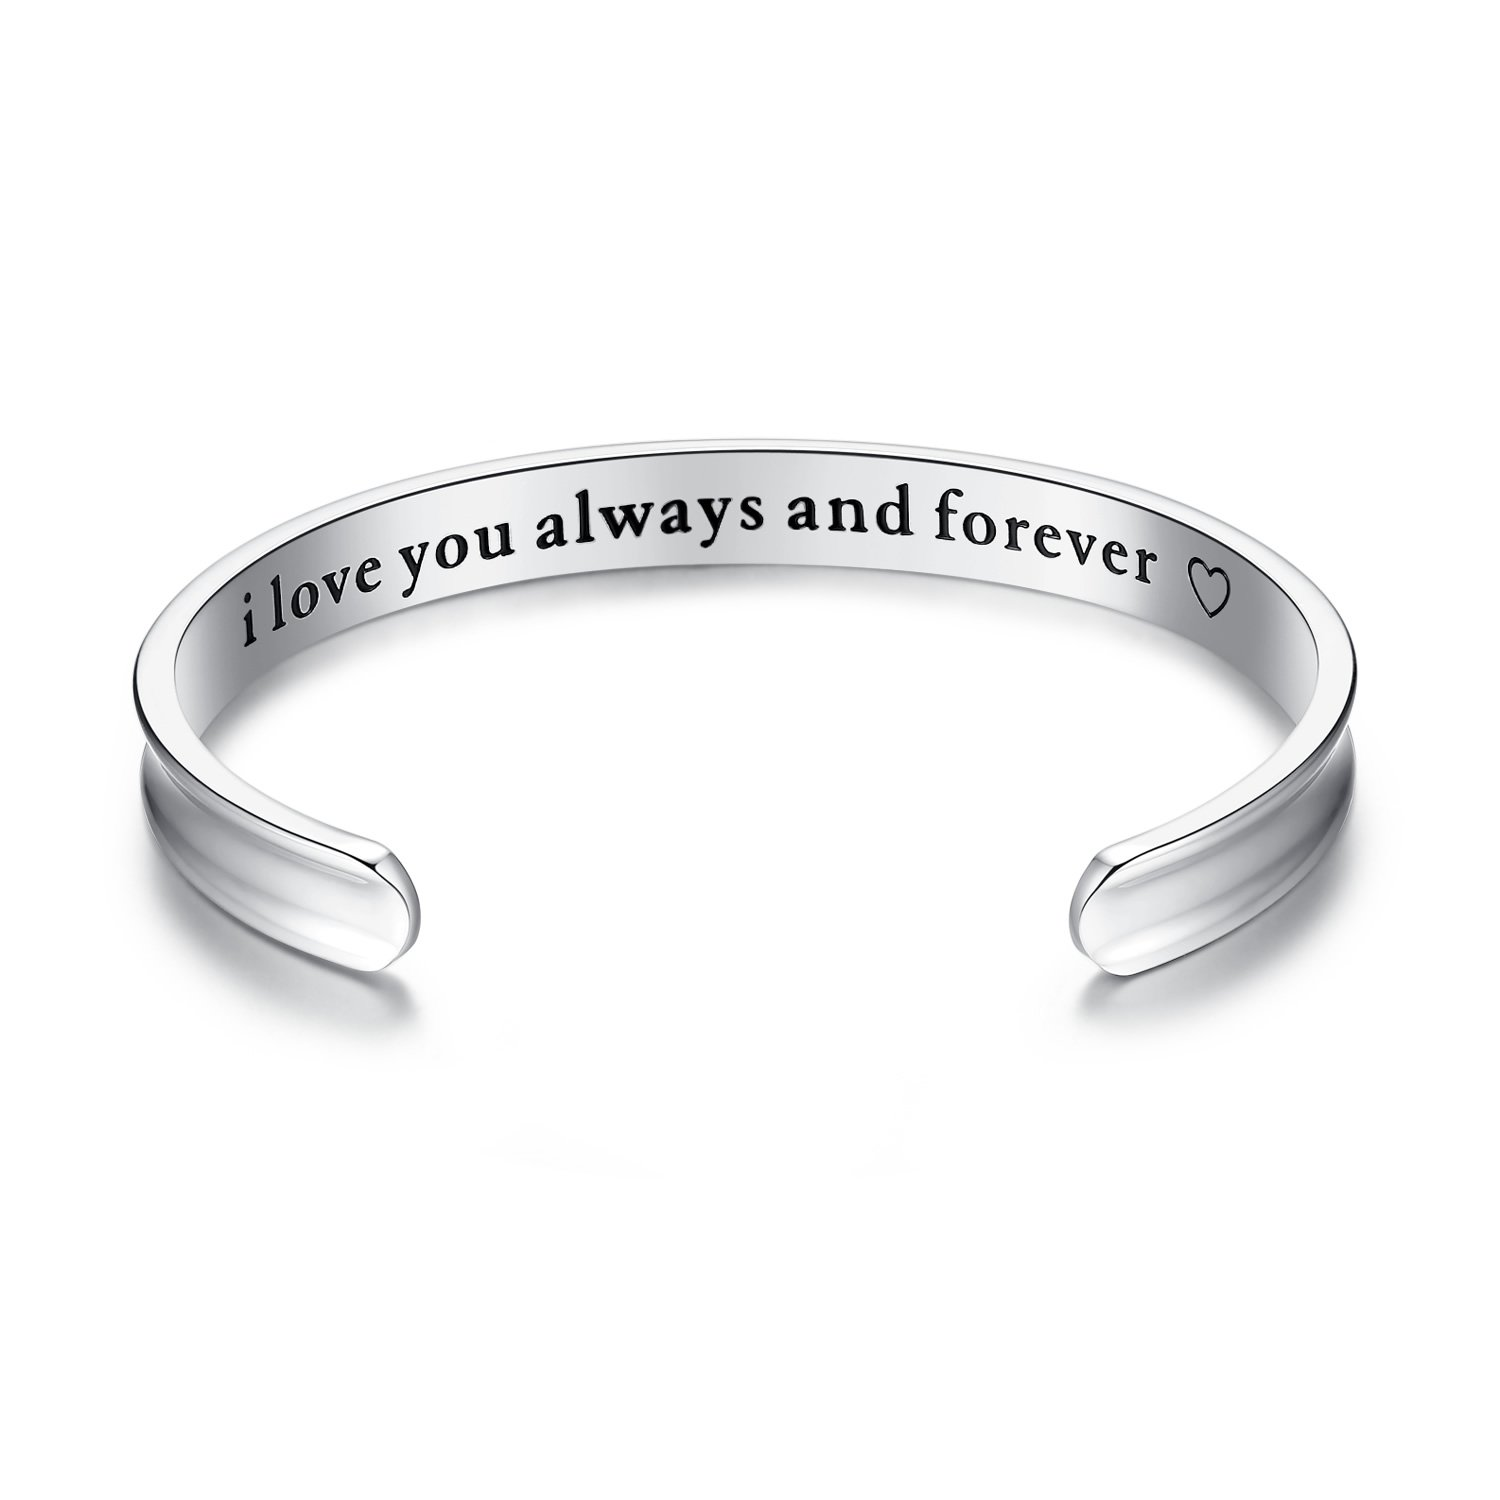 b5ada29b0eaf  I love you always and forever  grooved bracelet. material 316L stainless  steel. 2 colors  silver